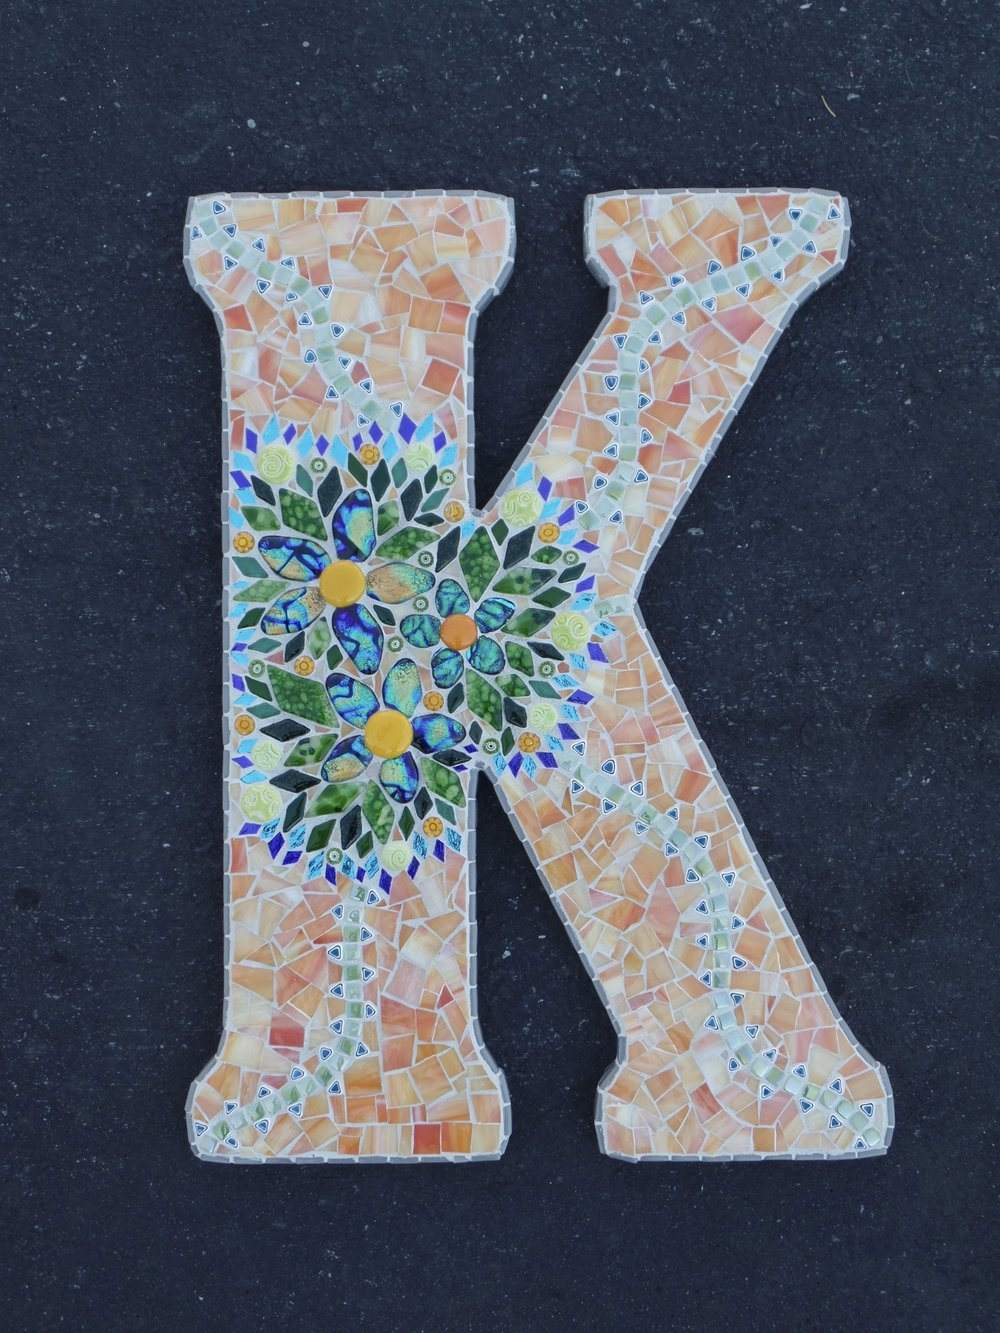 K is for Katie - Fused glass dichroic flowers are the centerpiece to this design.